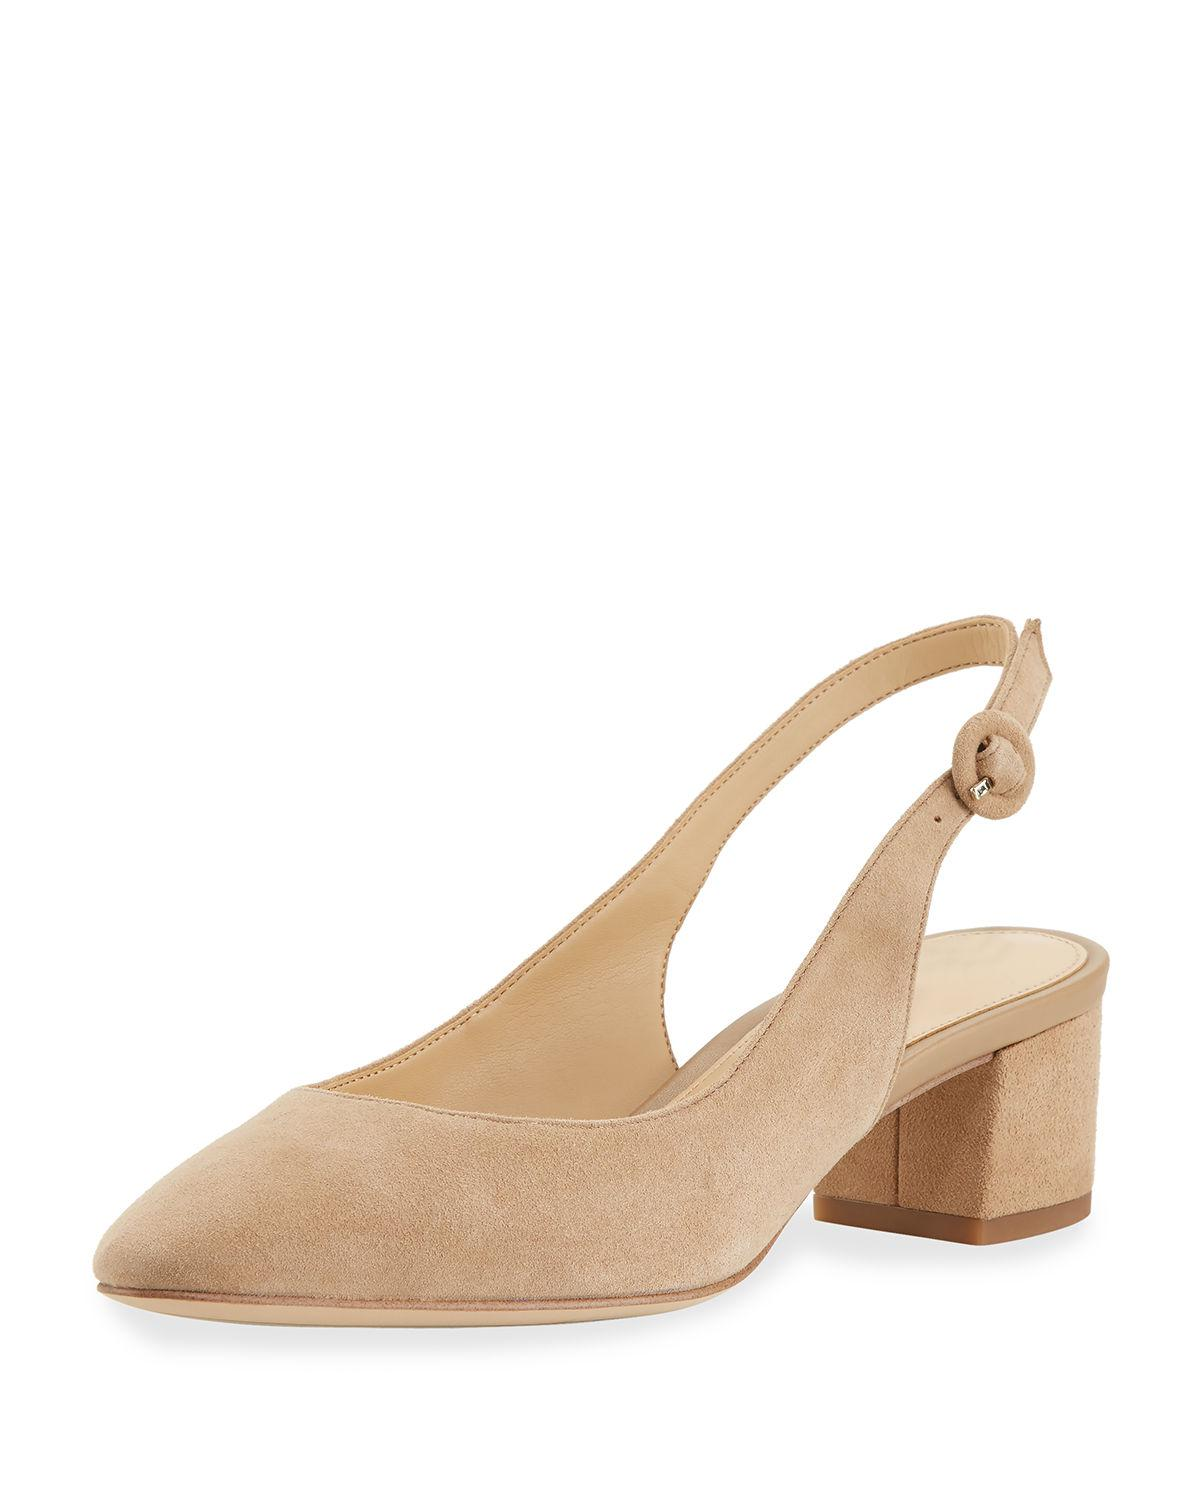 551c788a6 Lyst - Sam Edelman Lorene Suede Low-heel Slingback Pump in Natural